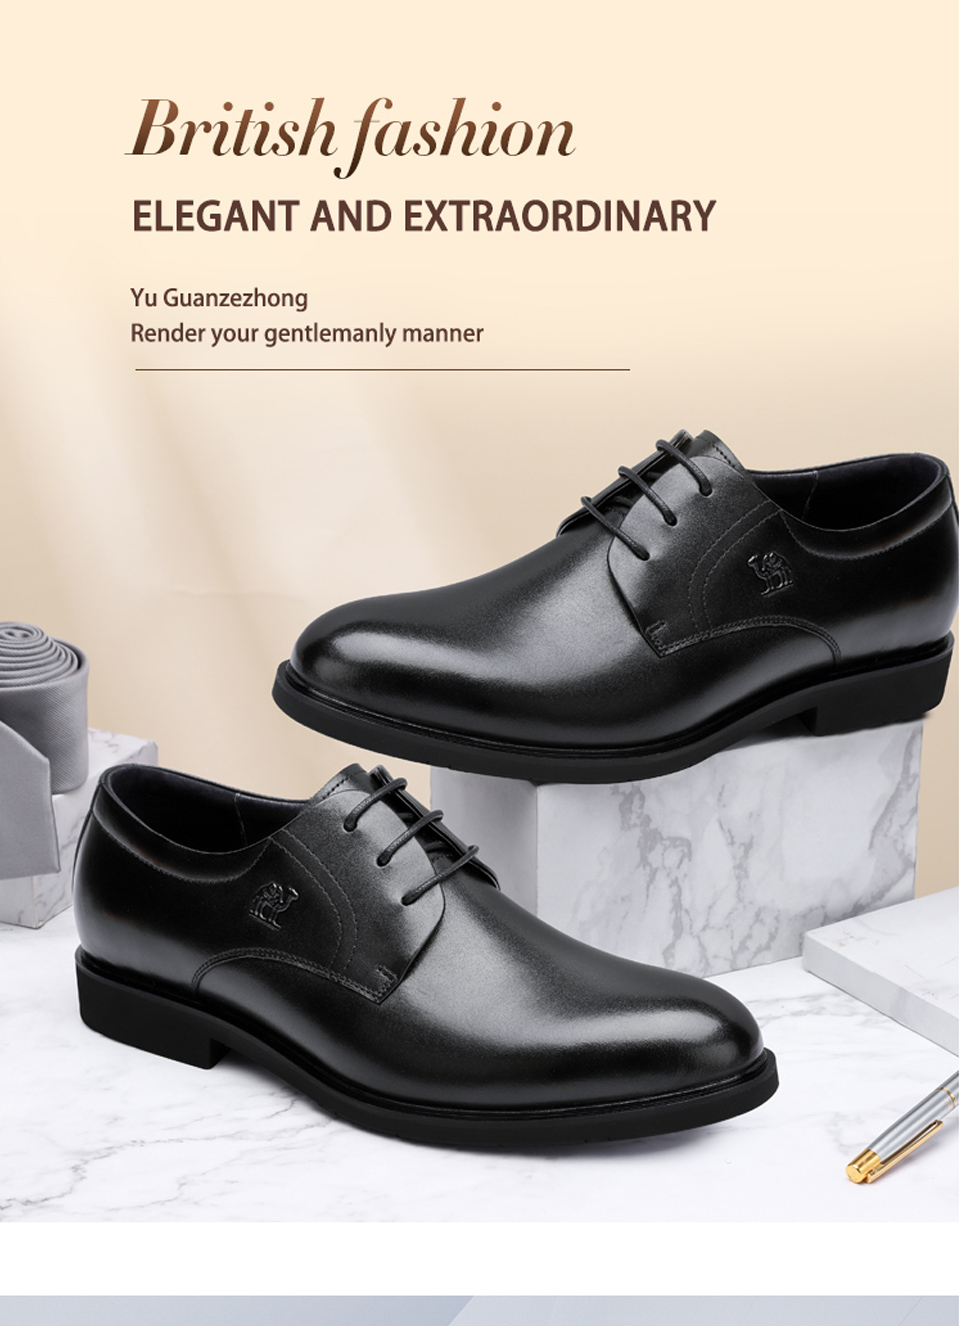 ebcf1a950a HOT SALE] CAMEL Business Wedding Dress Shoes England Genuine Leather ...